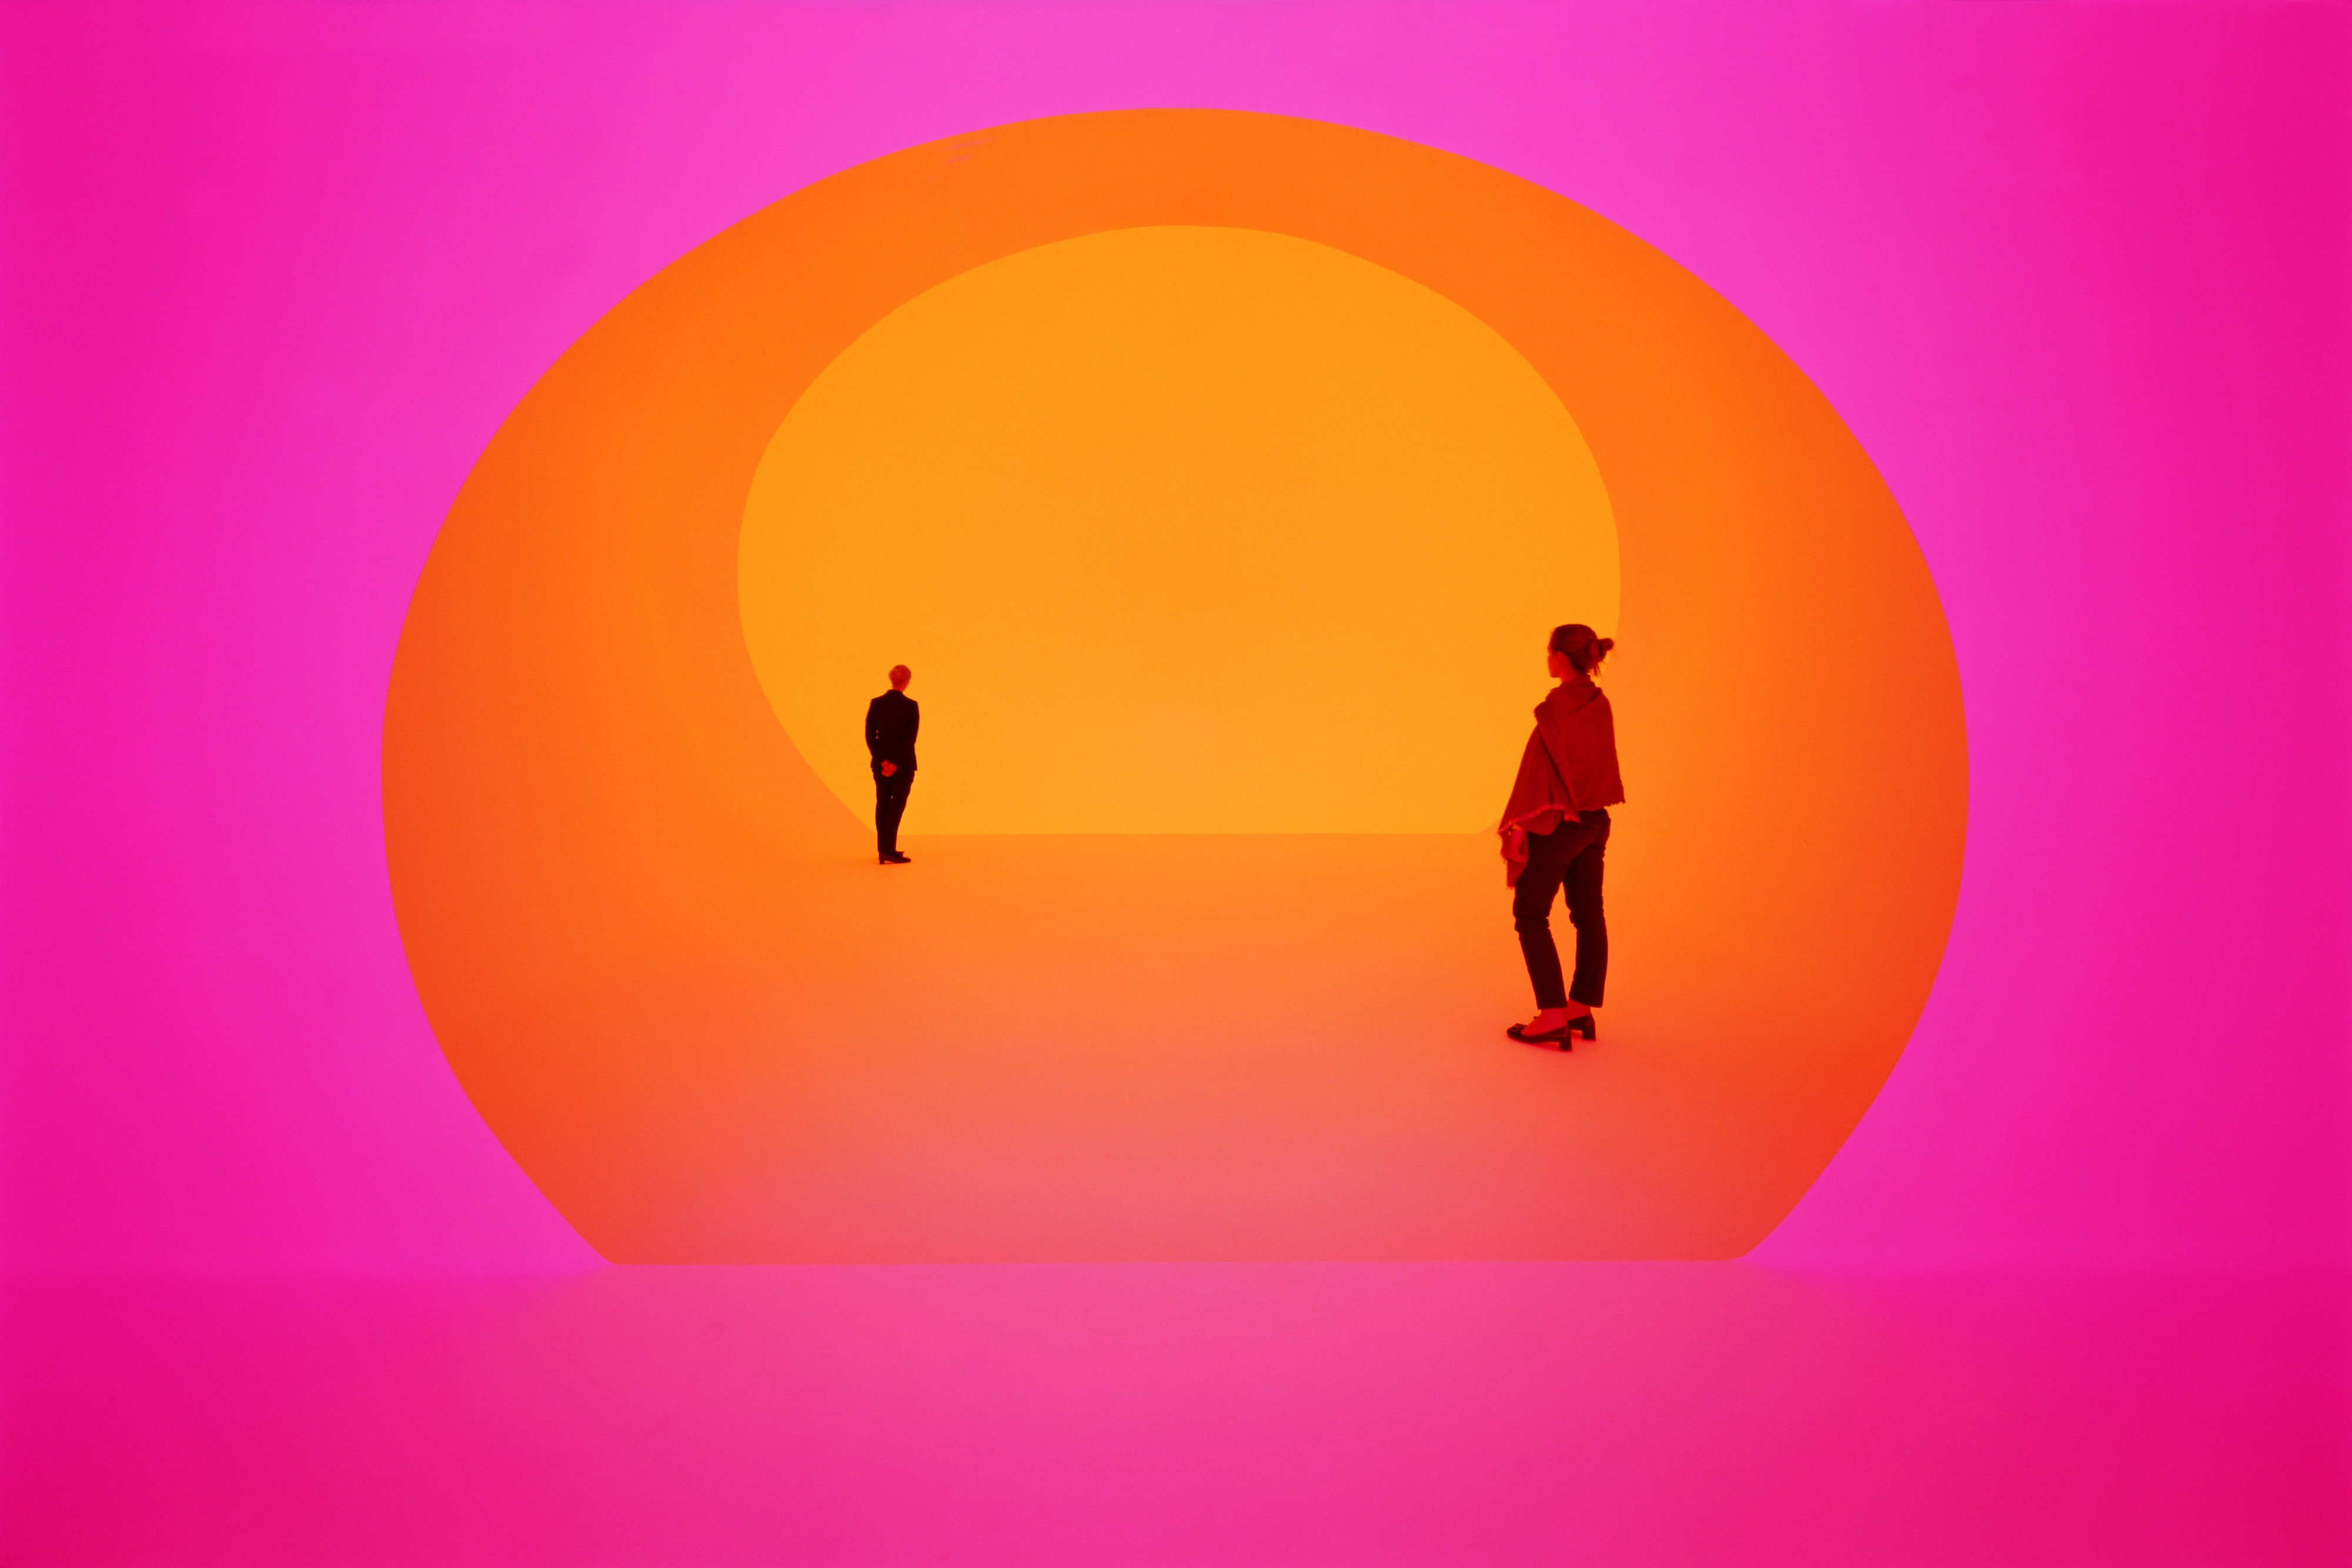 James Turrell (American; Contemporary, Post-Minimalism, Light and Space, Installation; b. 1943): Breathing Light, 2013. LED light into space. Los Angeles County Museum of Art, California, USA. © James Turrell. Photo © Florian Holzherr. © This artwork may be protected by copyright. It is posted on the site in accordance with fair use principles.